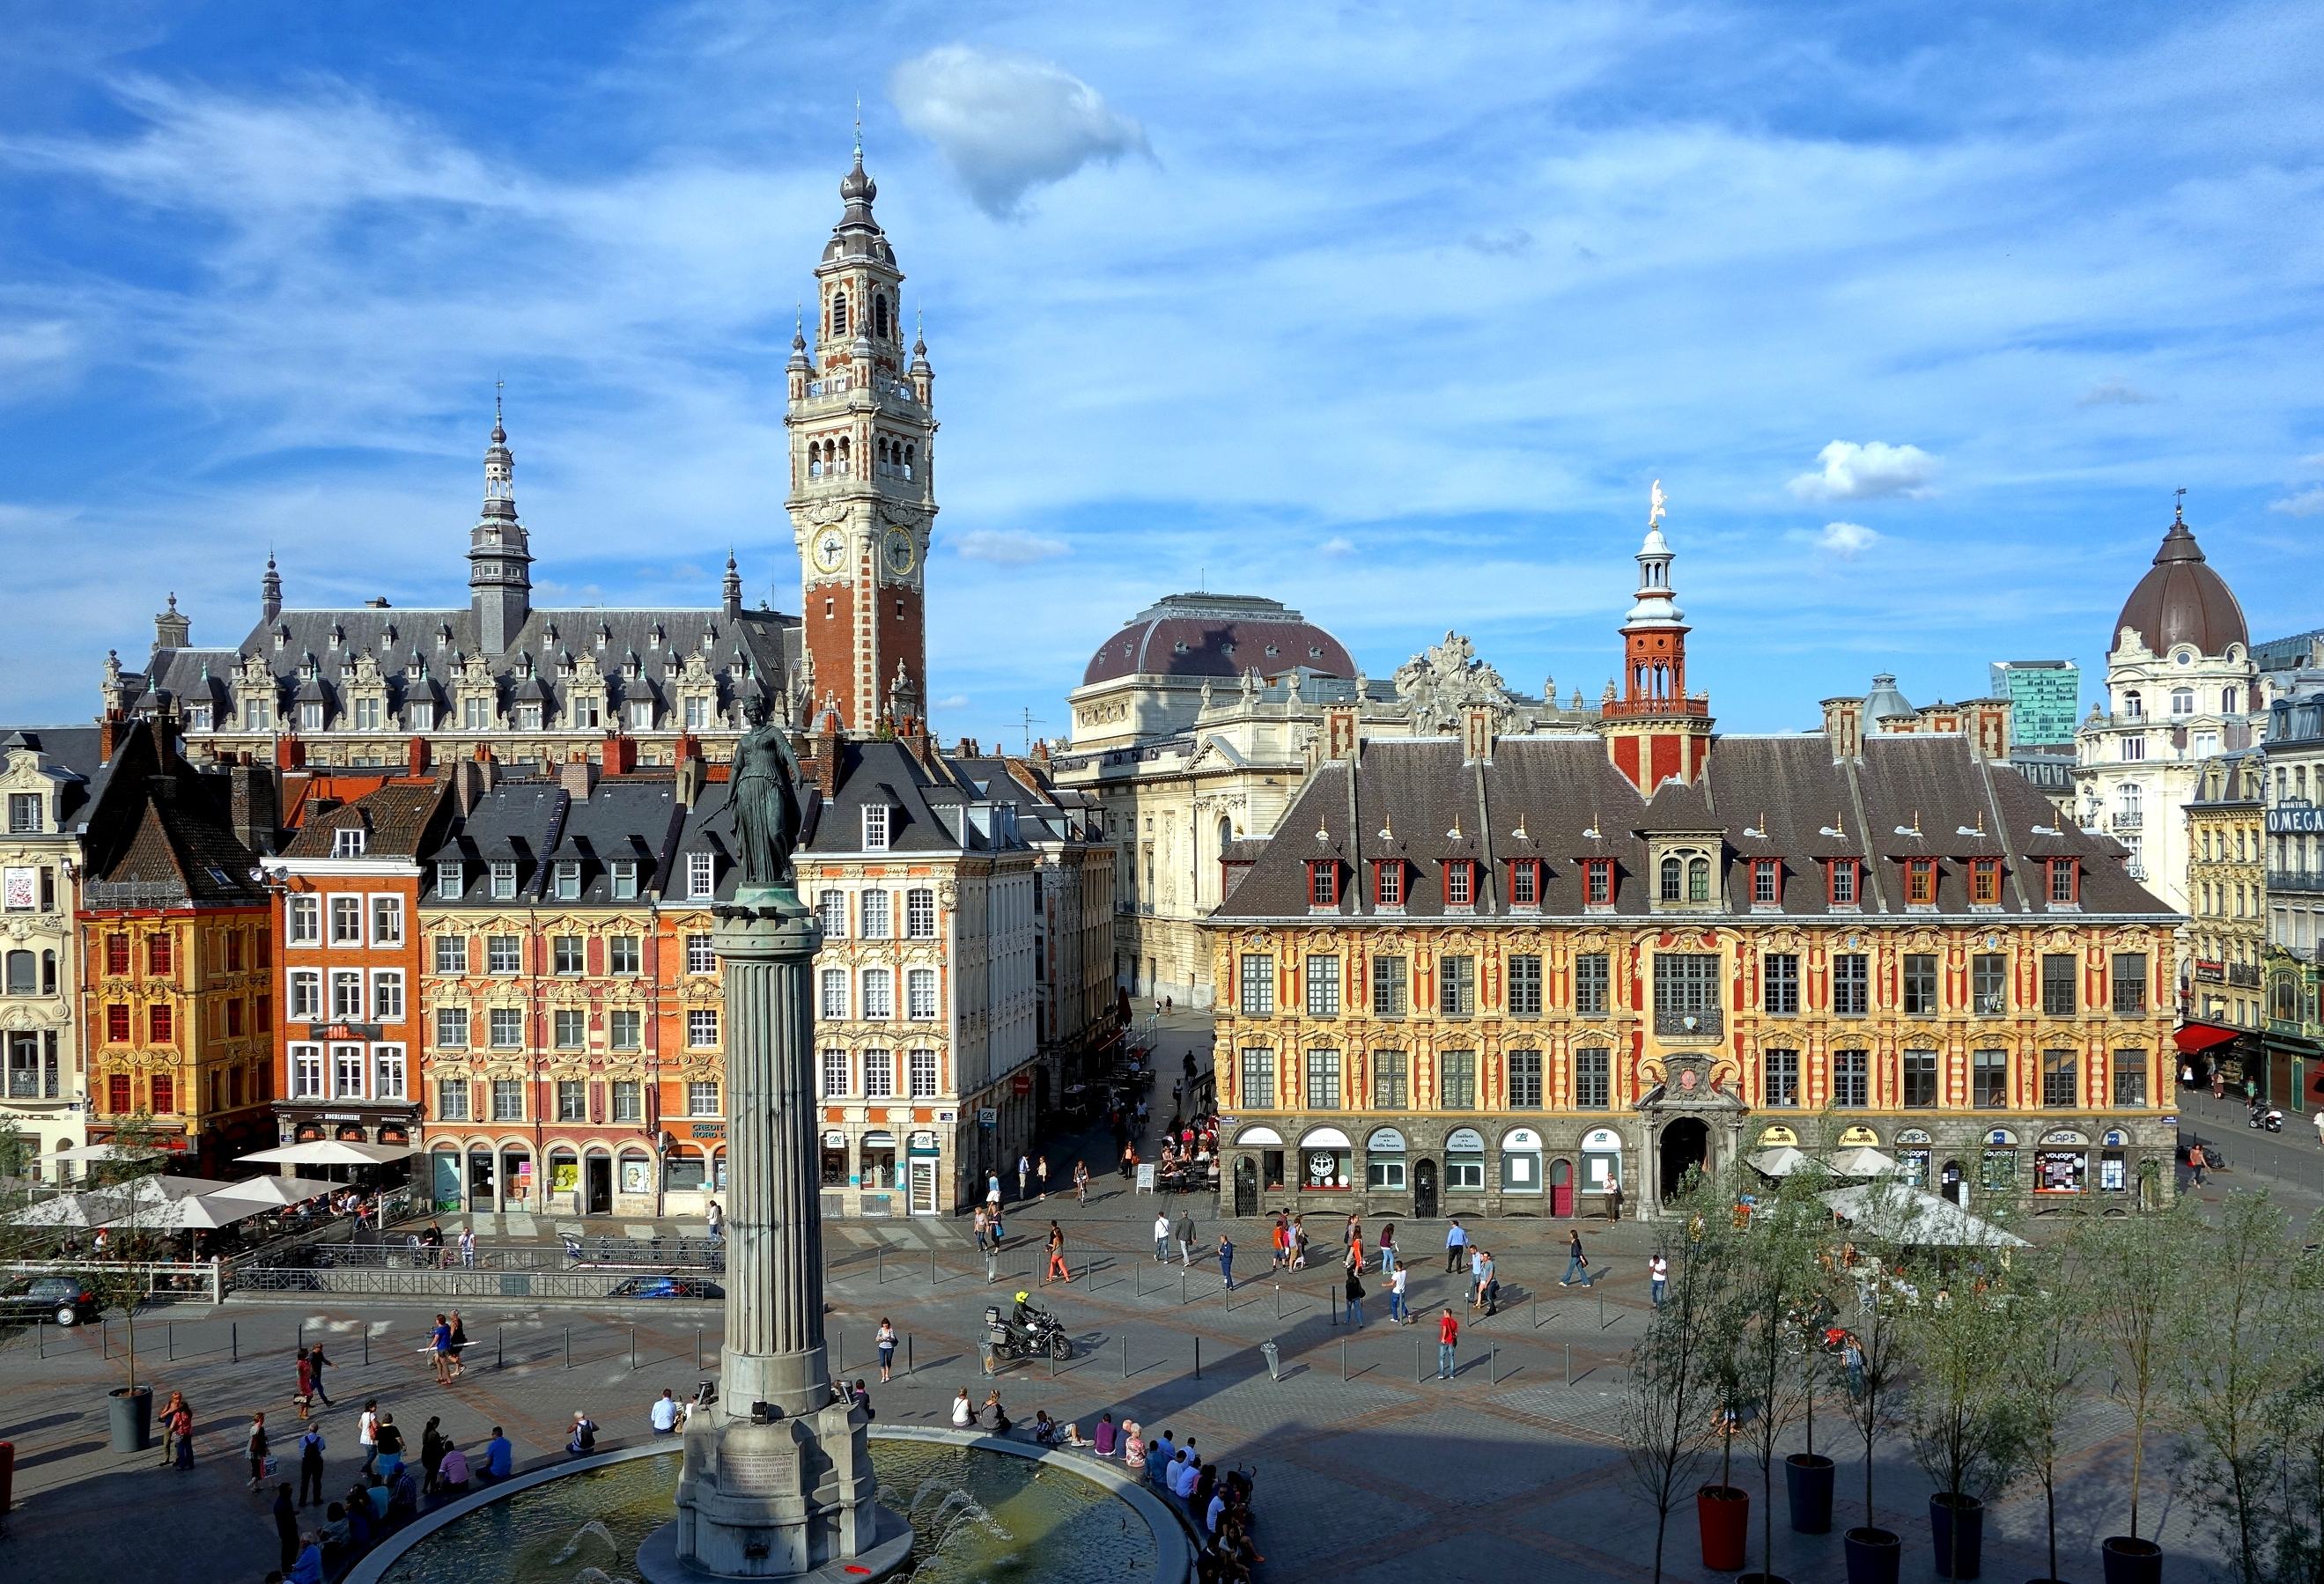 File:Lille vue gd place.JPG - Wikimedia Commons